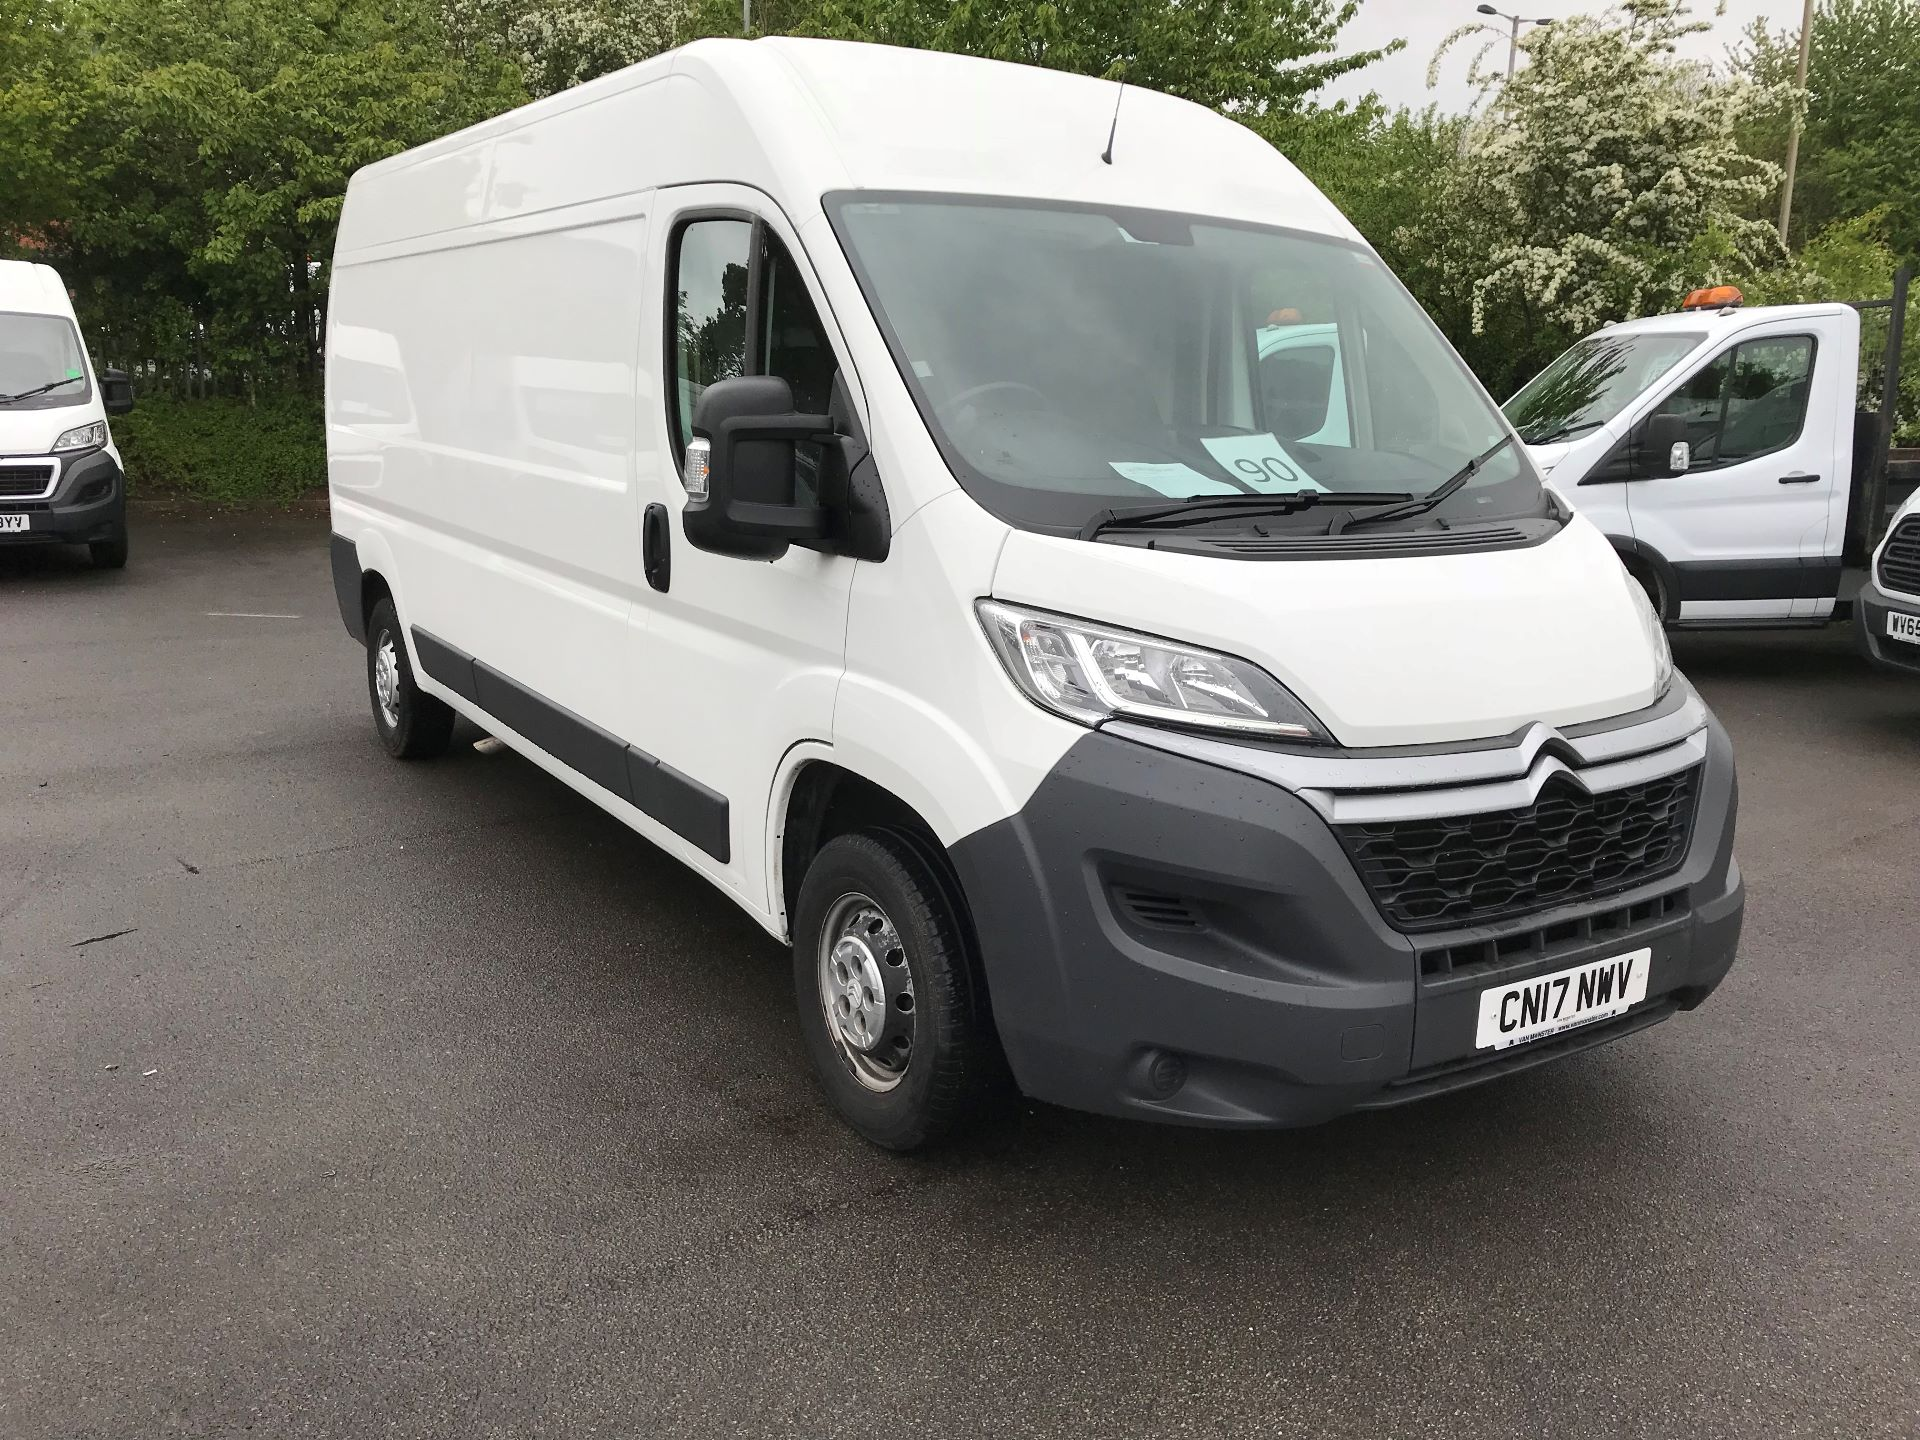 2017 Citroen Relay 2.0 Bluehdi H2 Van 130Ps (CN17NWV)